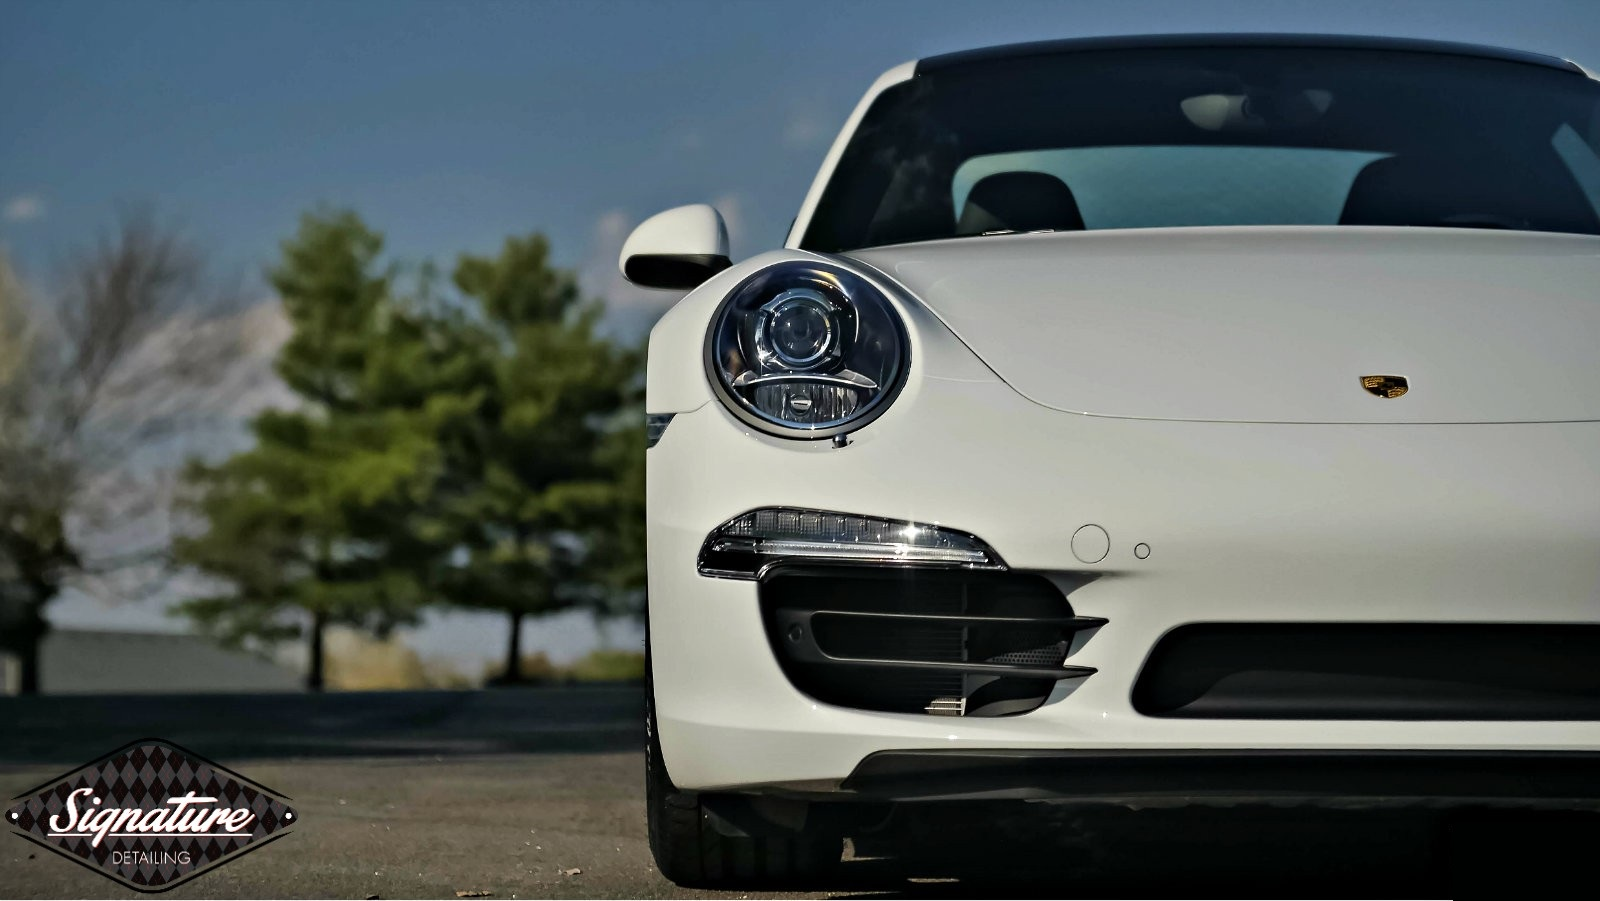 A ceramic nano coating protects this Porsche Carrera 4a from UV and the elements.